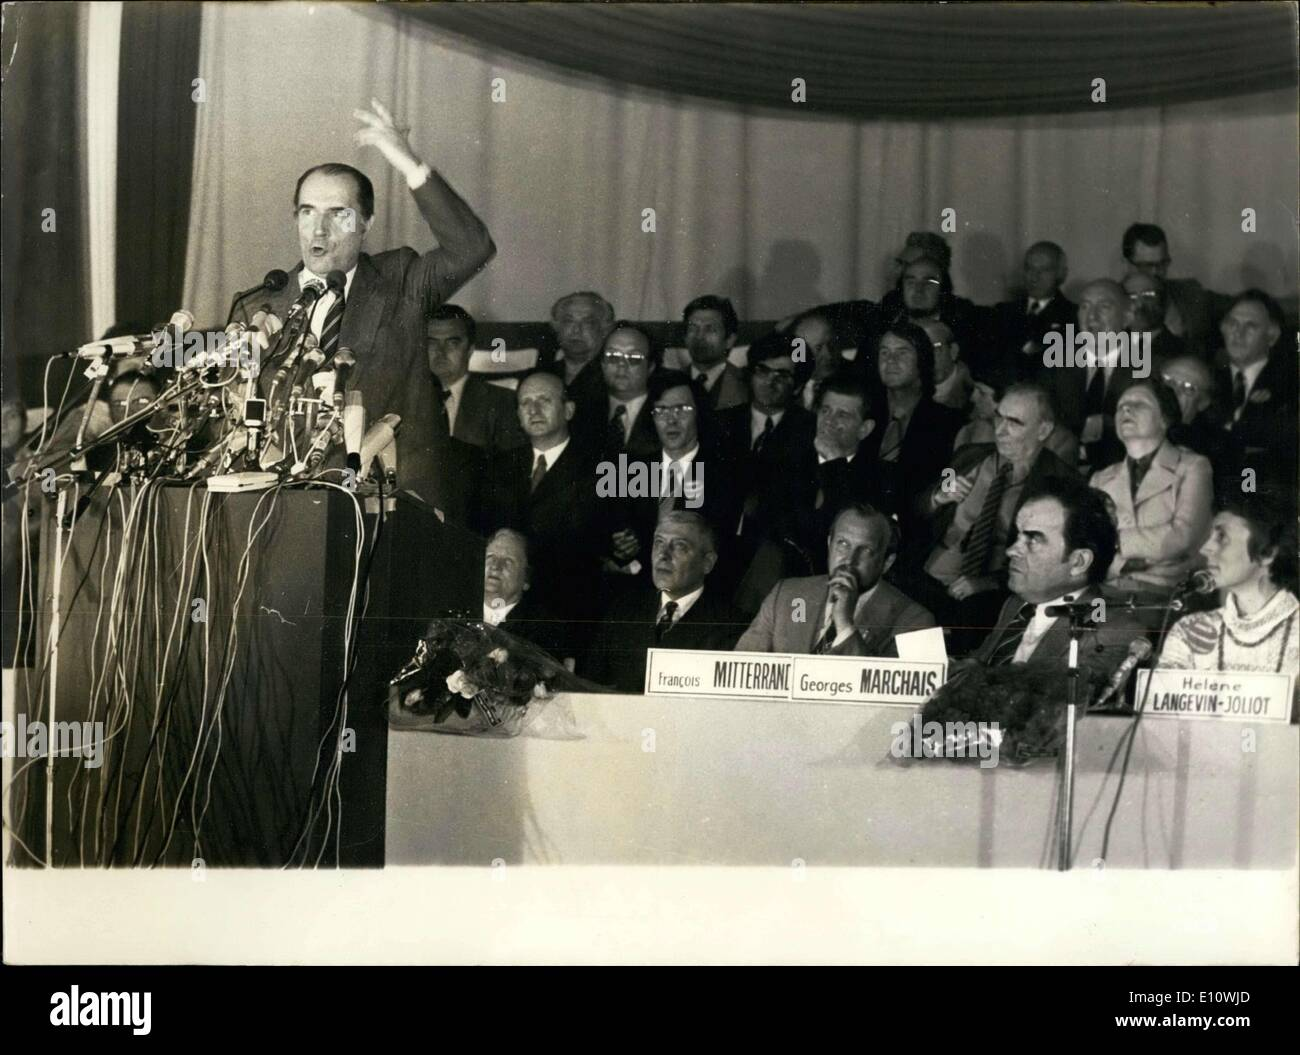 Apr. 26, 1974 - Communists, socialists, and radicals--all socialists--participated in a unitary meeting marked by the electoral - Stock Image